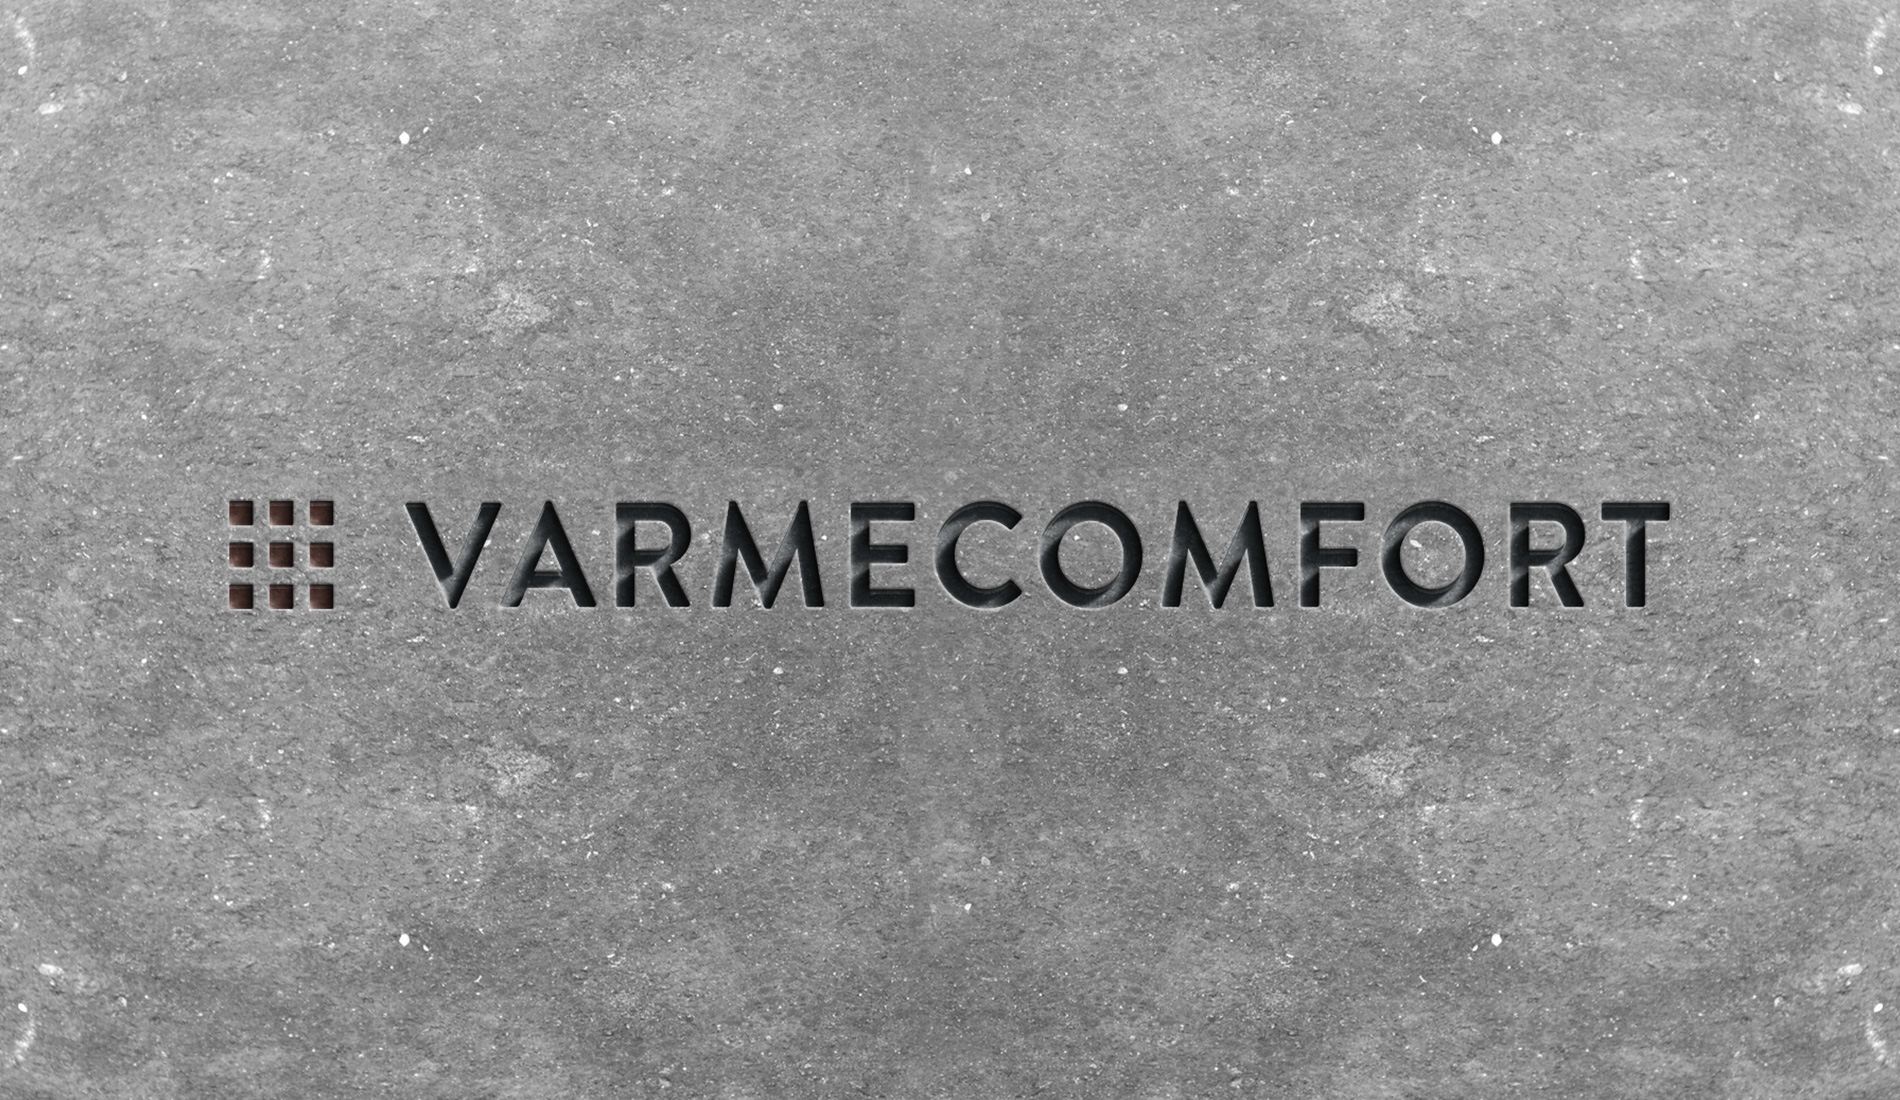 ohHello Design Project | Varmecomfort Identity